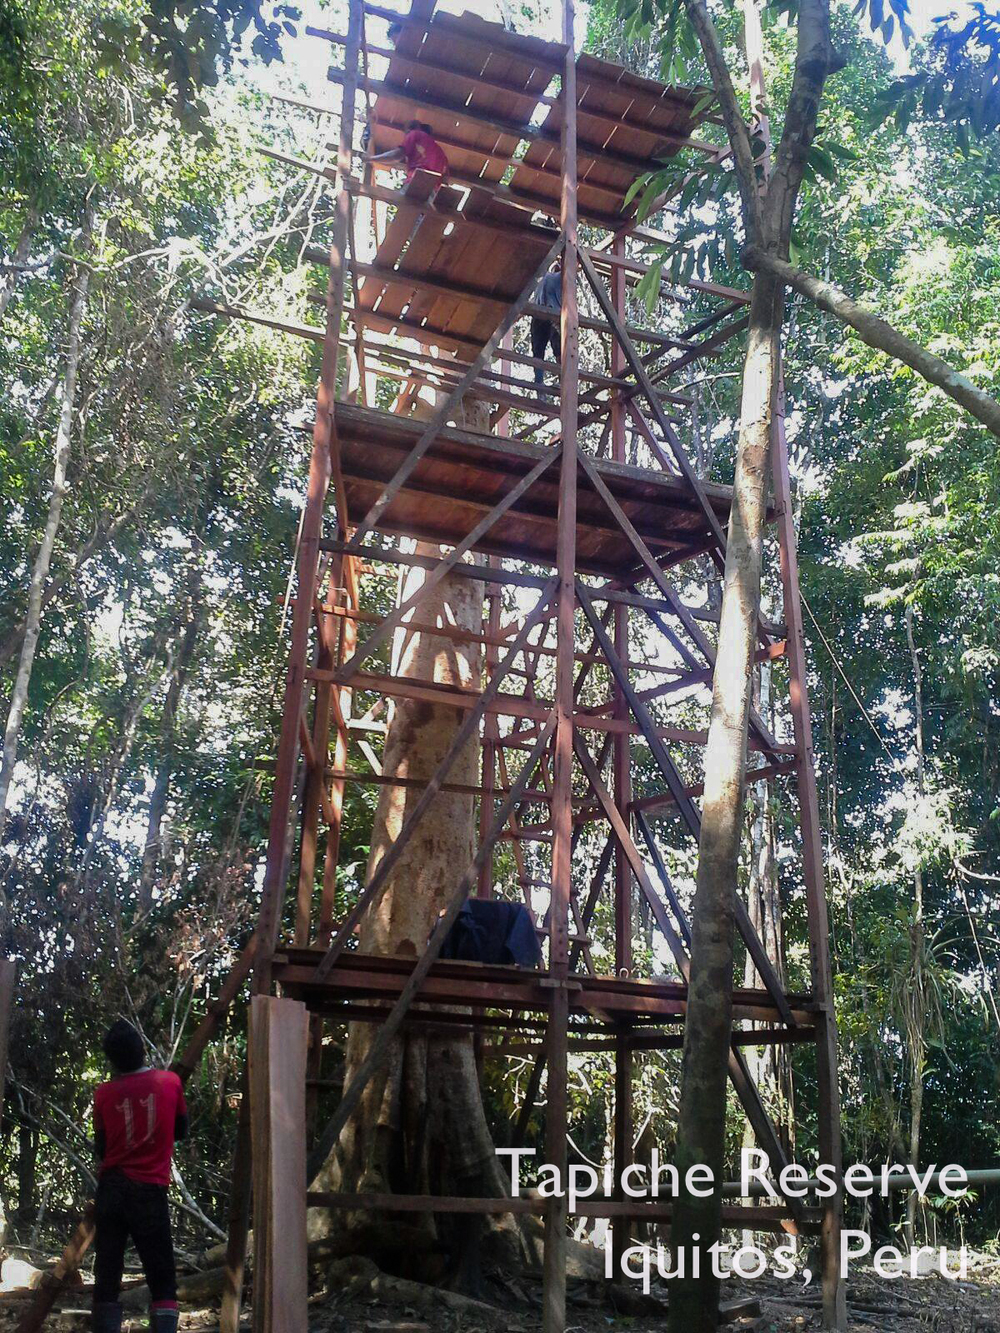 Board by board, our Jungle Canopy Observation Tower gains another level! Tapiche Reserve Jungle, Peru